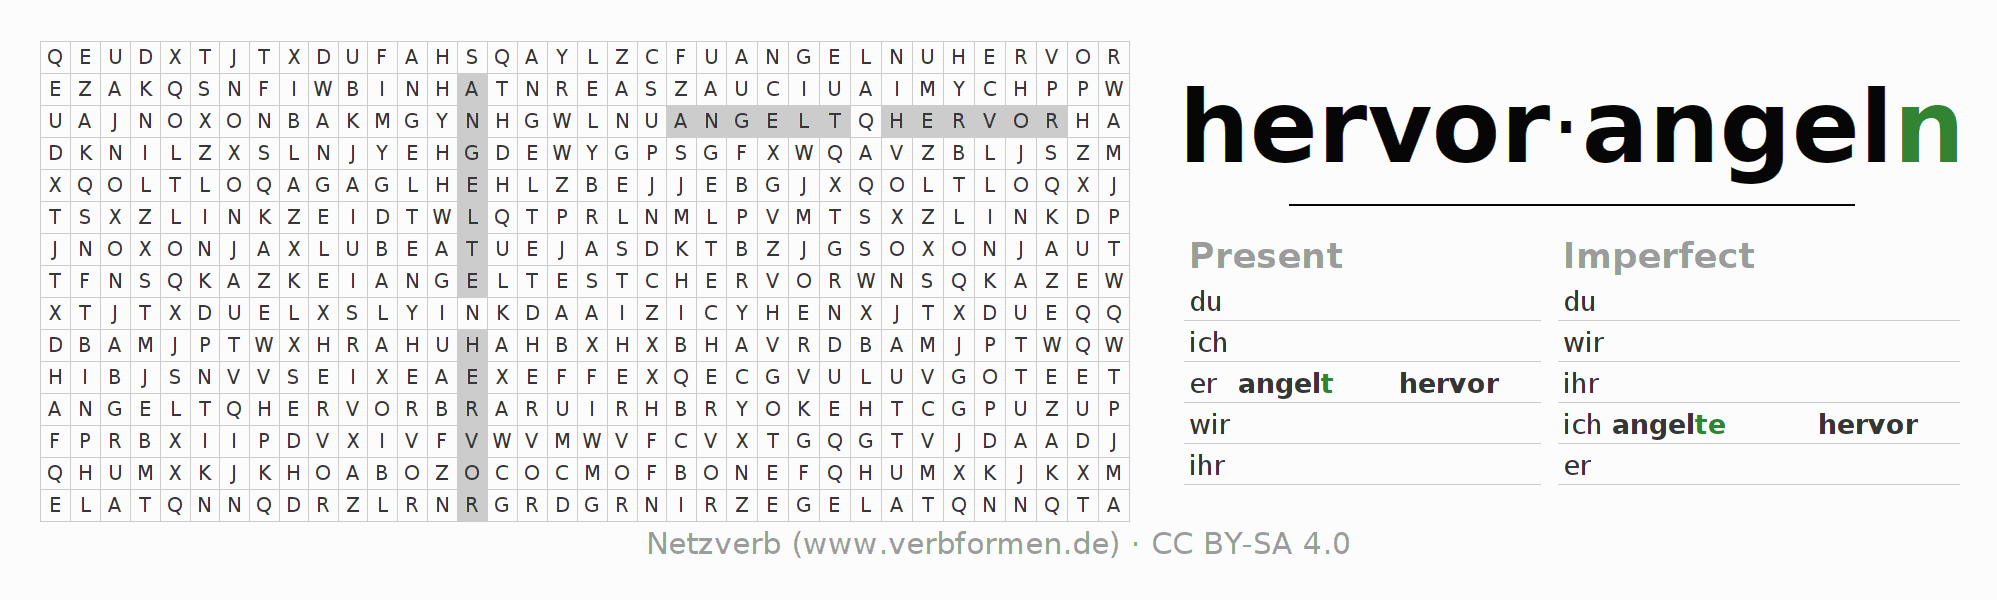 Word search puzzle for the conjugation of the verb hervorangeln